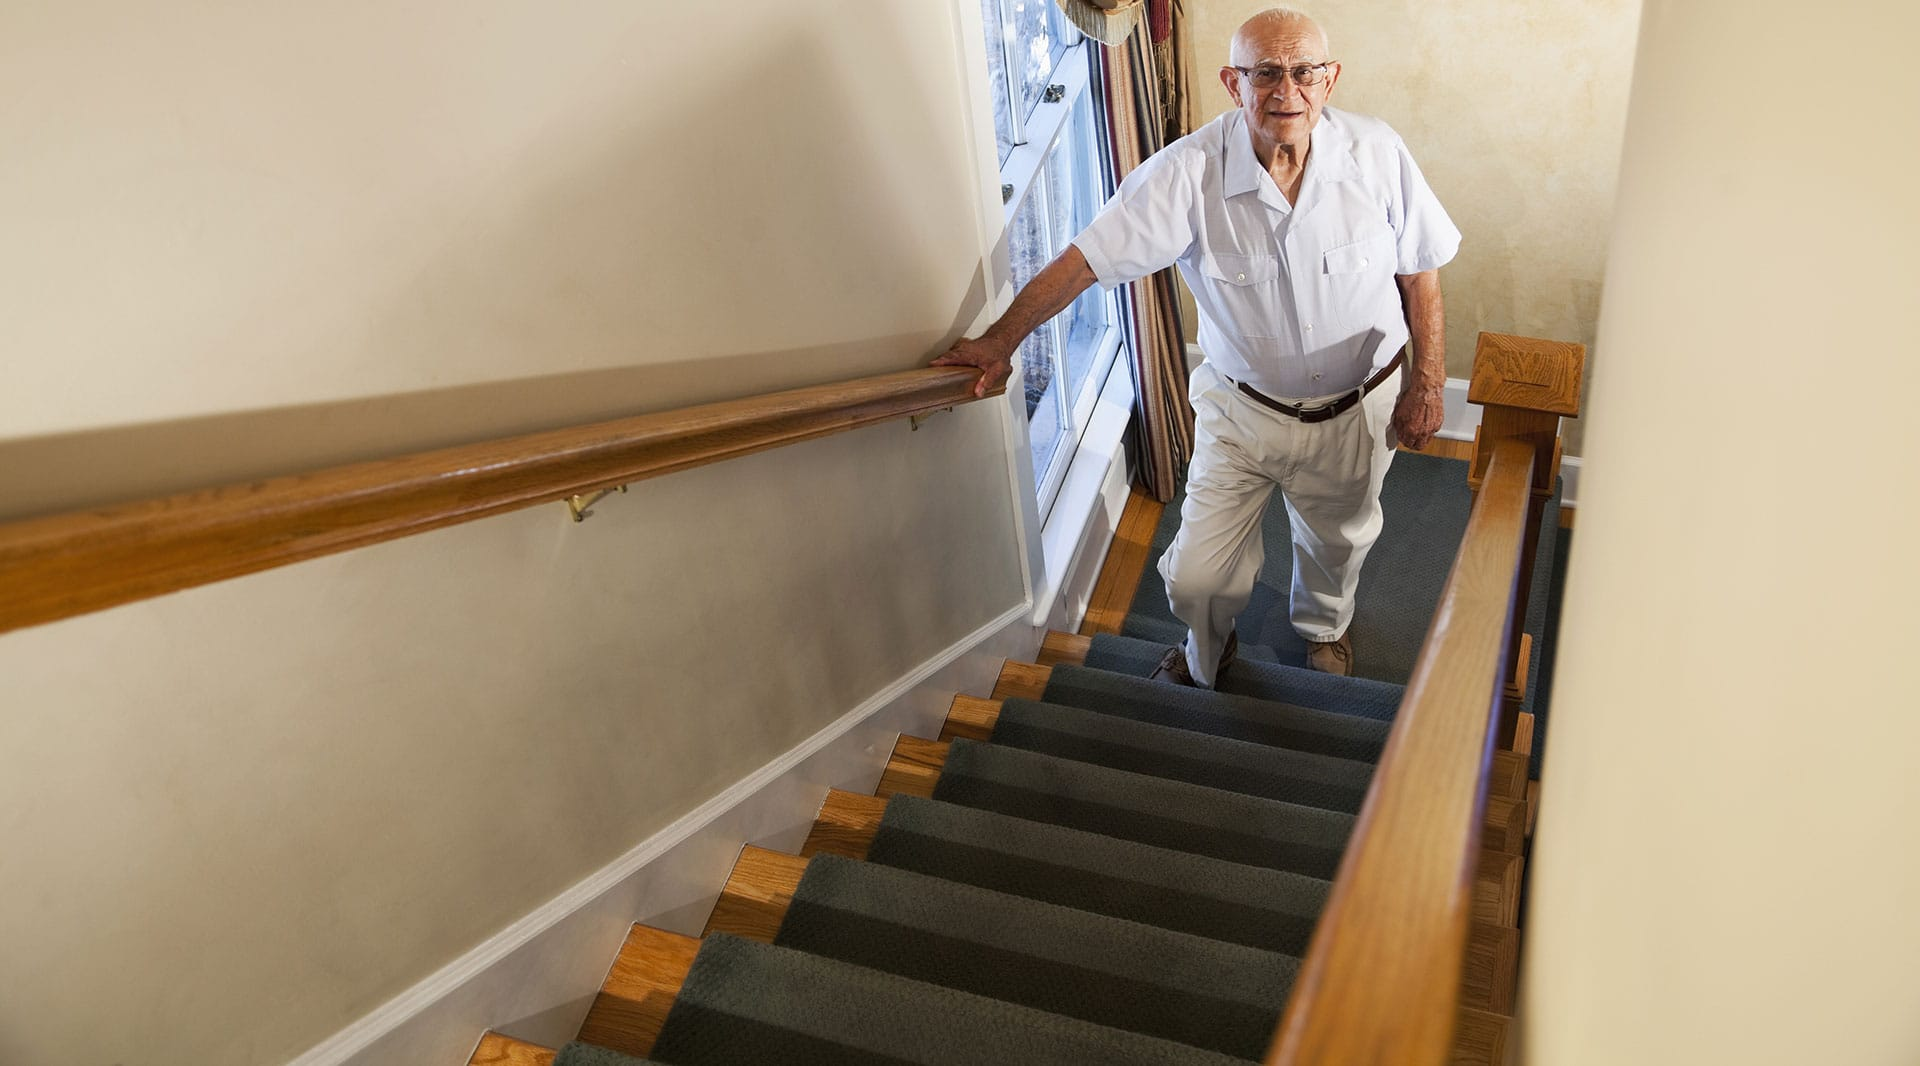 Photo of elderly man climbing stairs using handrail.